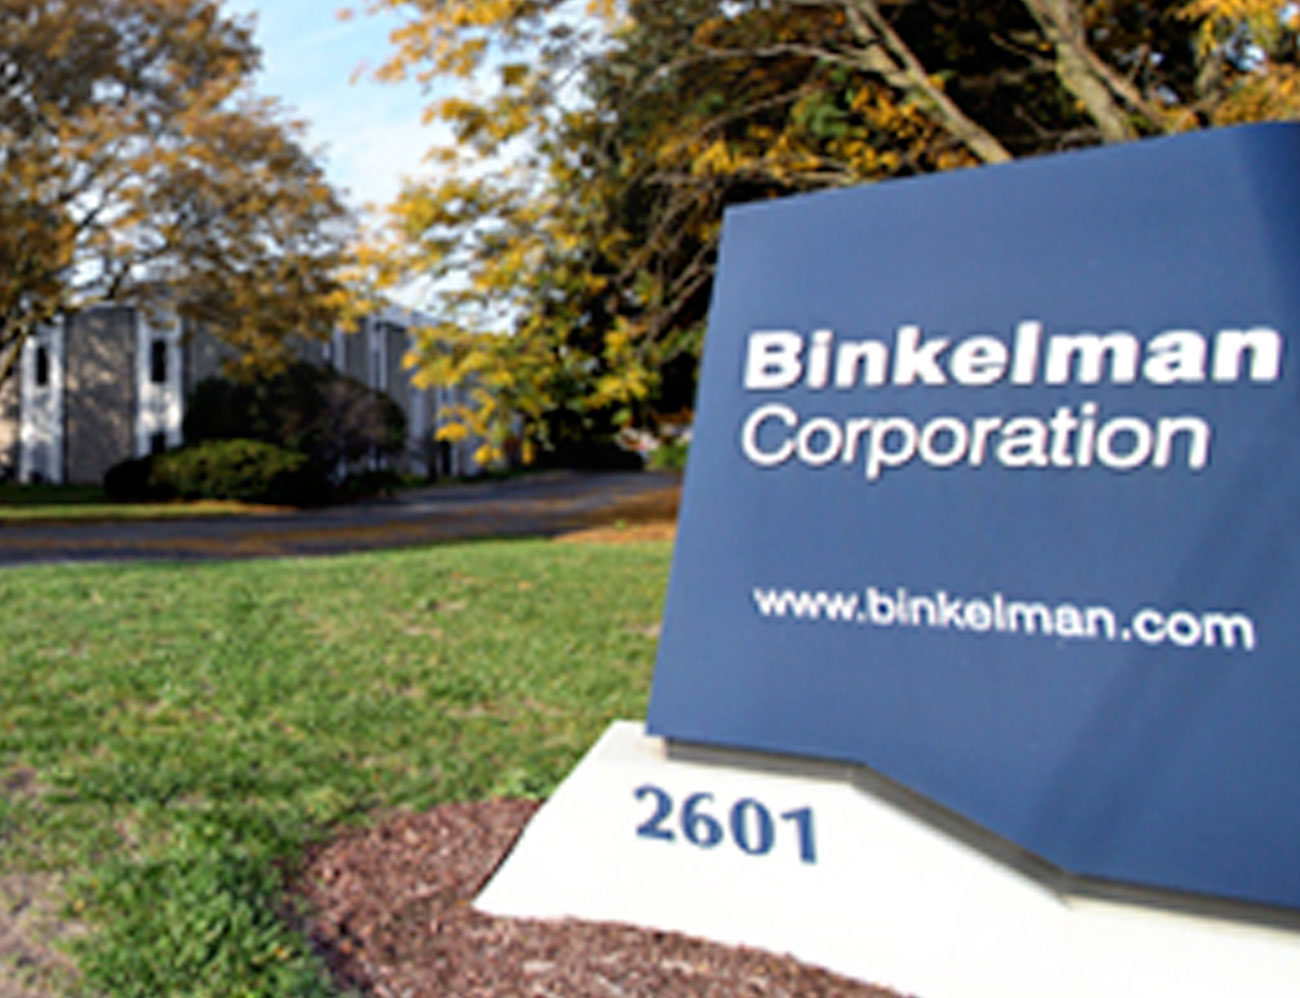 Binkelman sign.